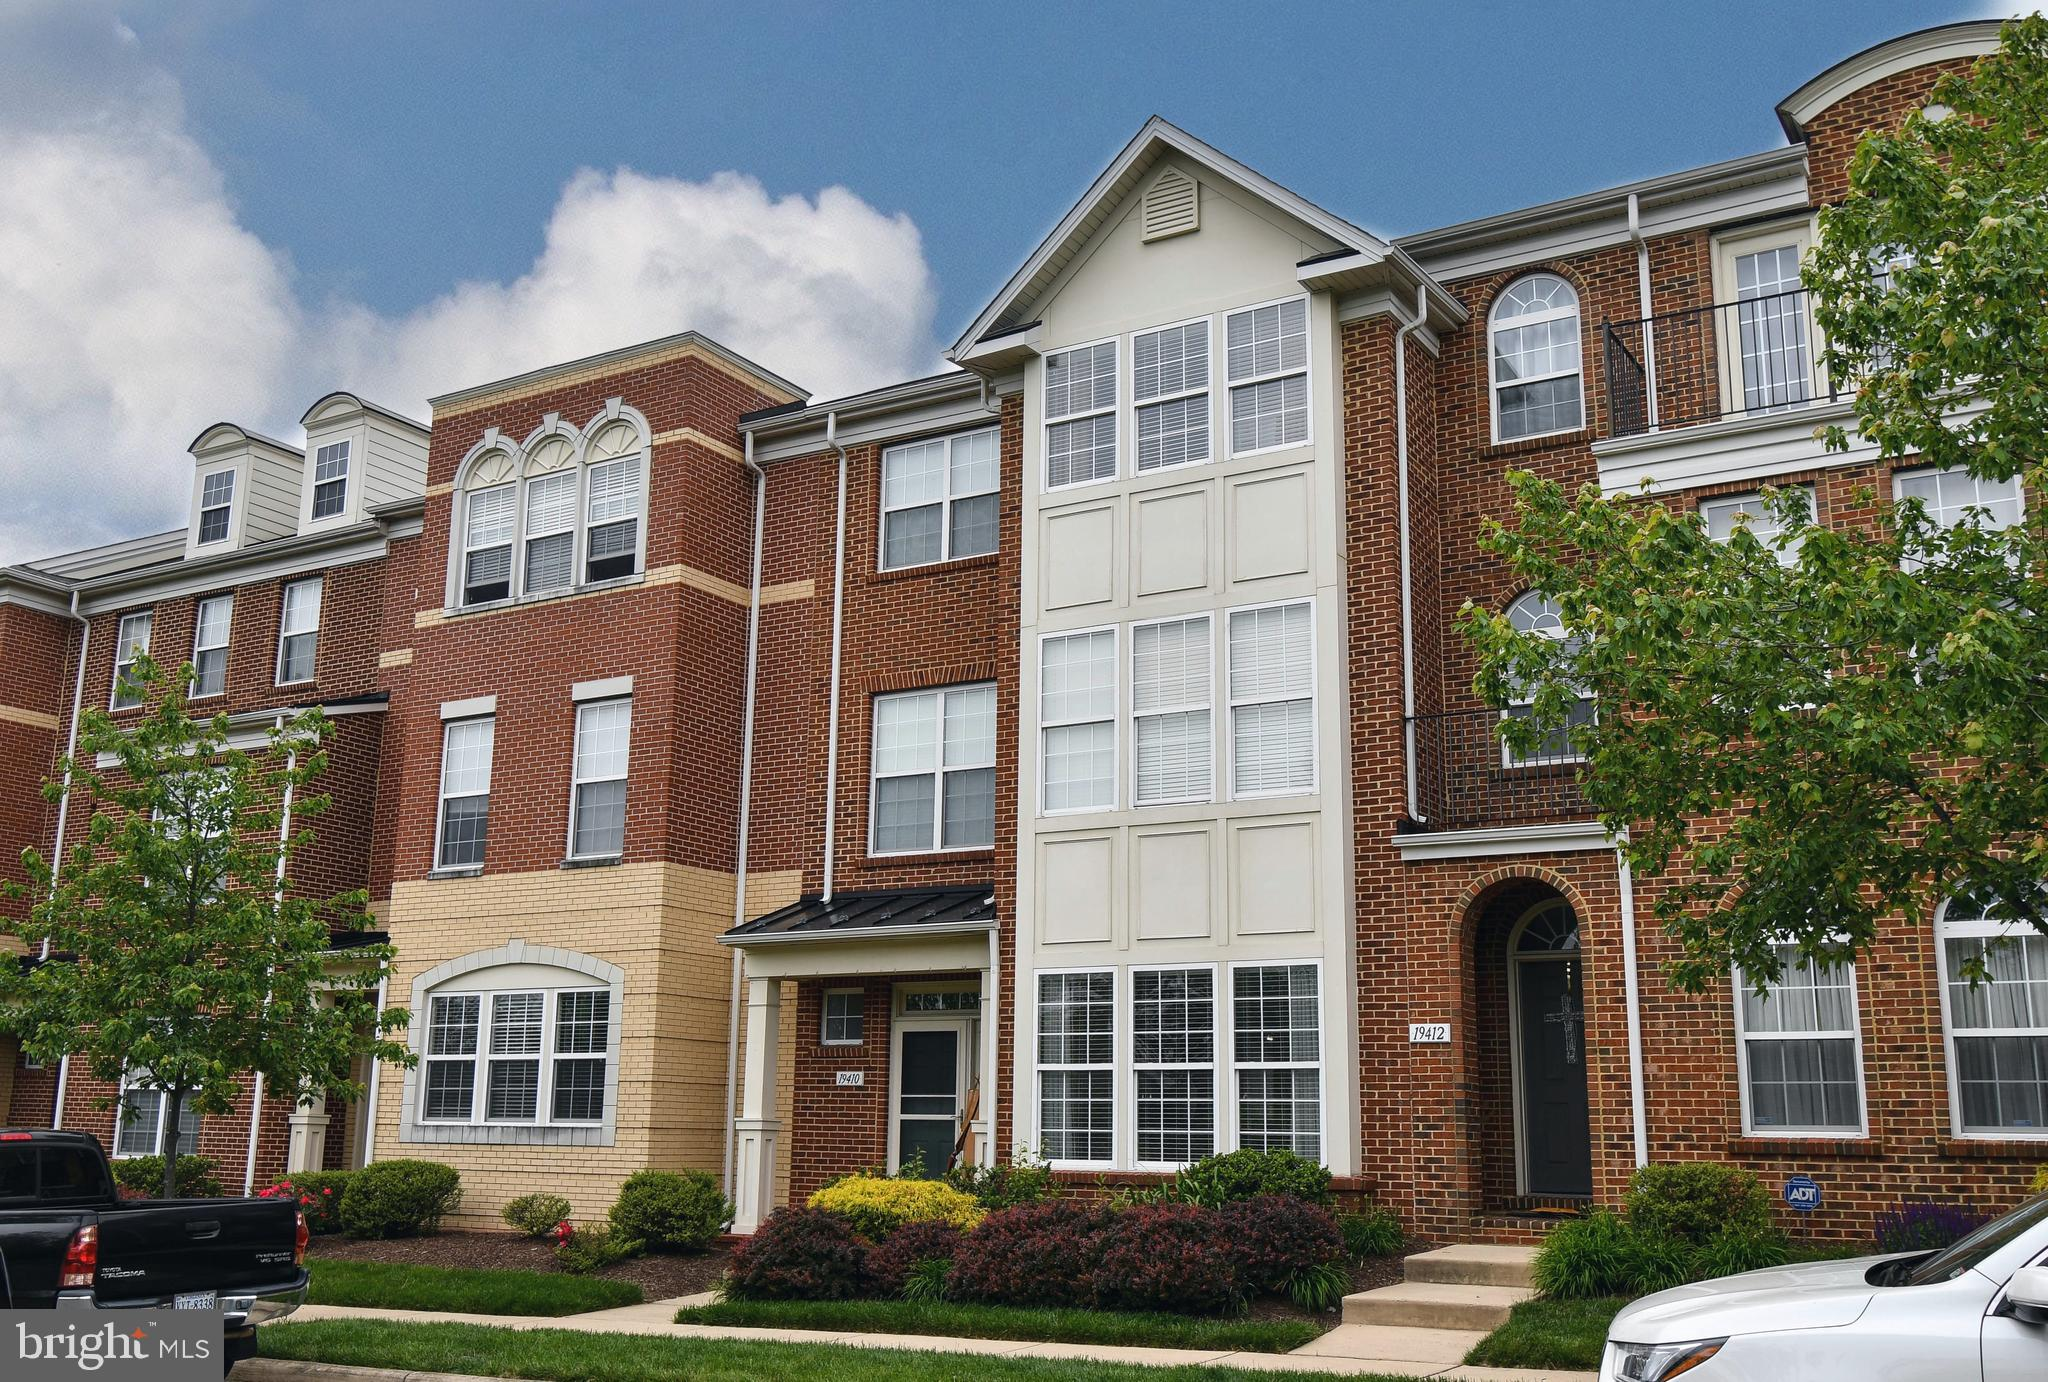 LOCATION! LOCATION! LOCATION!   THIS 3 LEVEL LUXURY TOWNHOME FEATURES 5 BEDROOMS, 4.5 BATHS, AND ALM